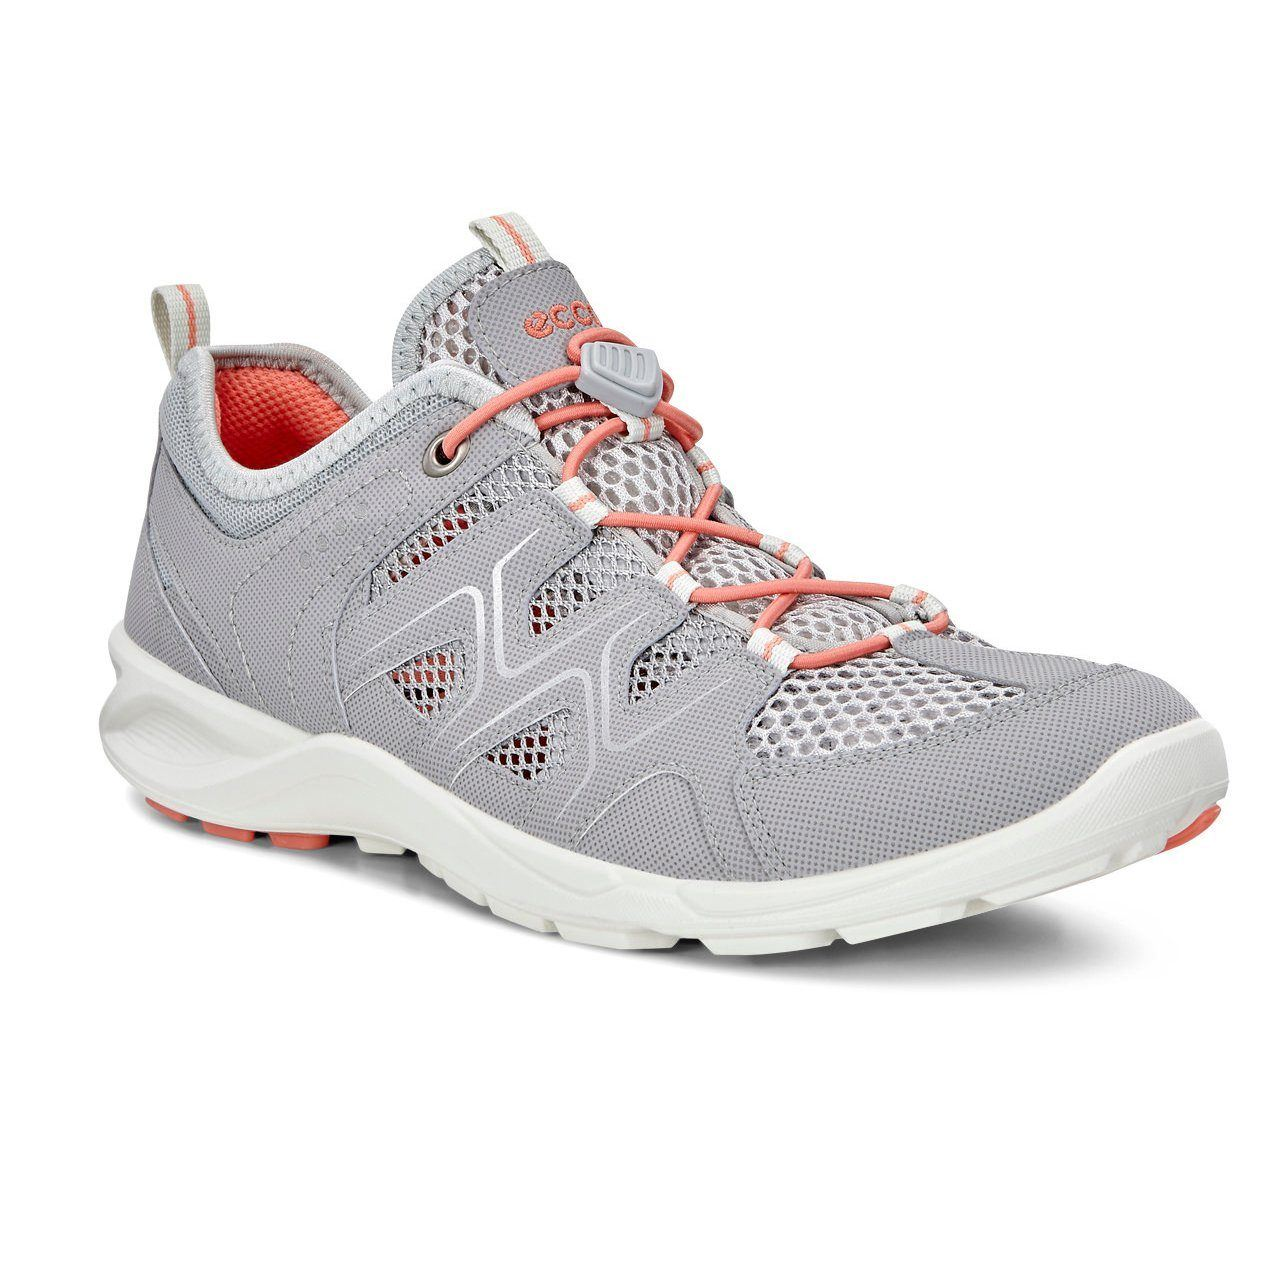 Terracruise - Womens - Silver Grey Active Leisure ECCO